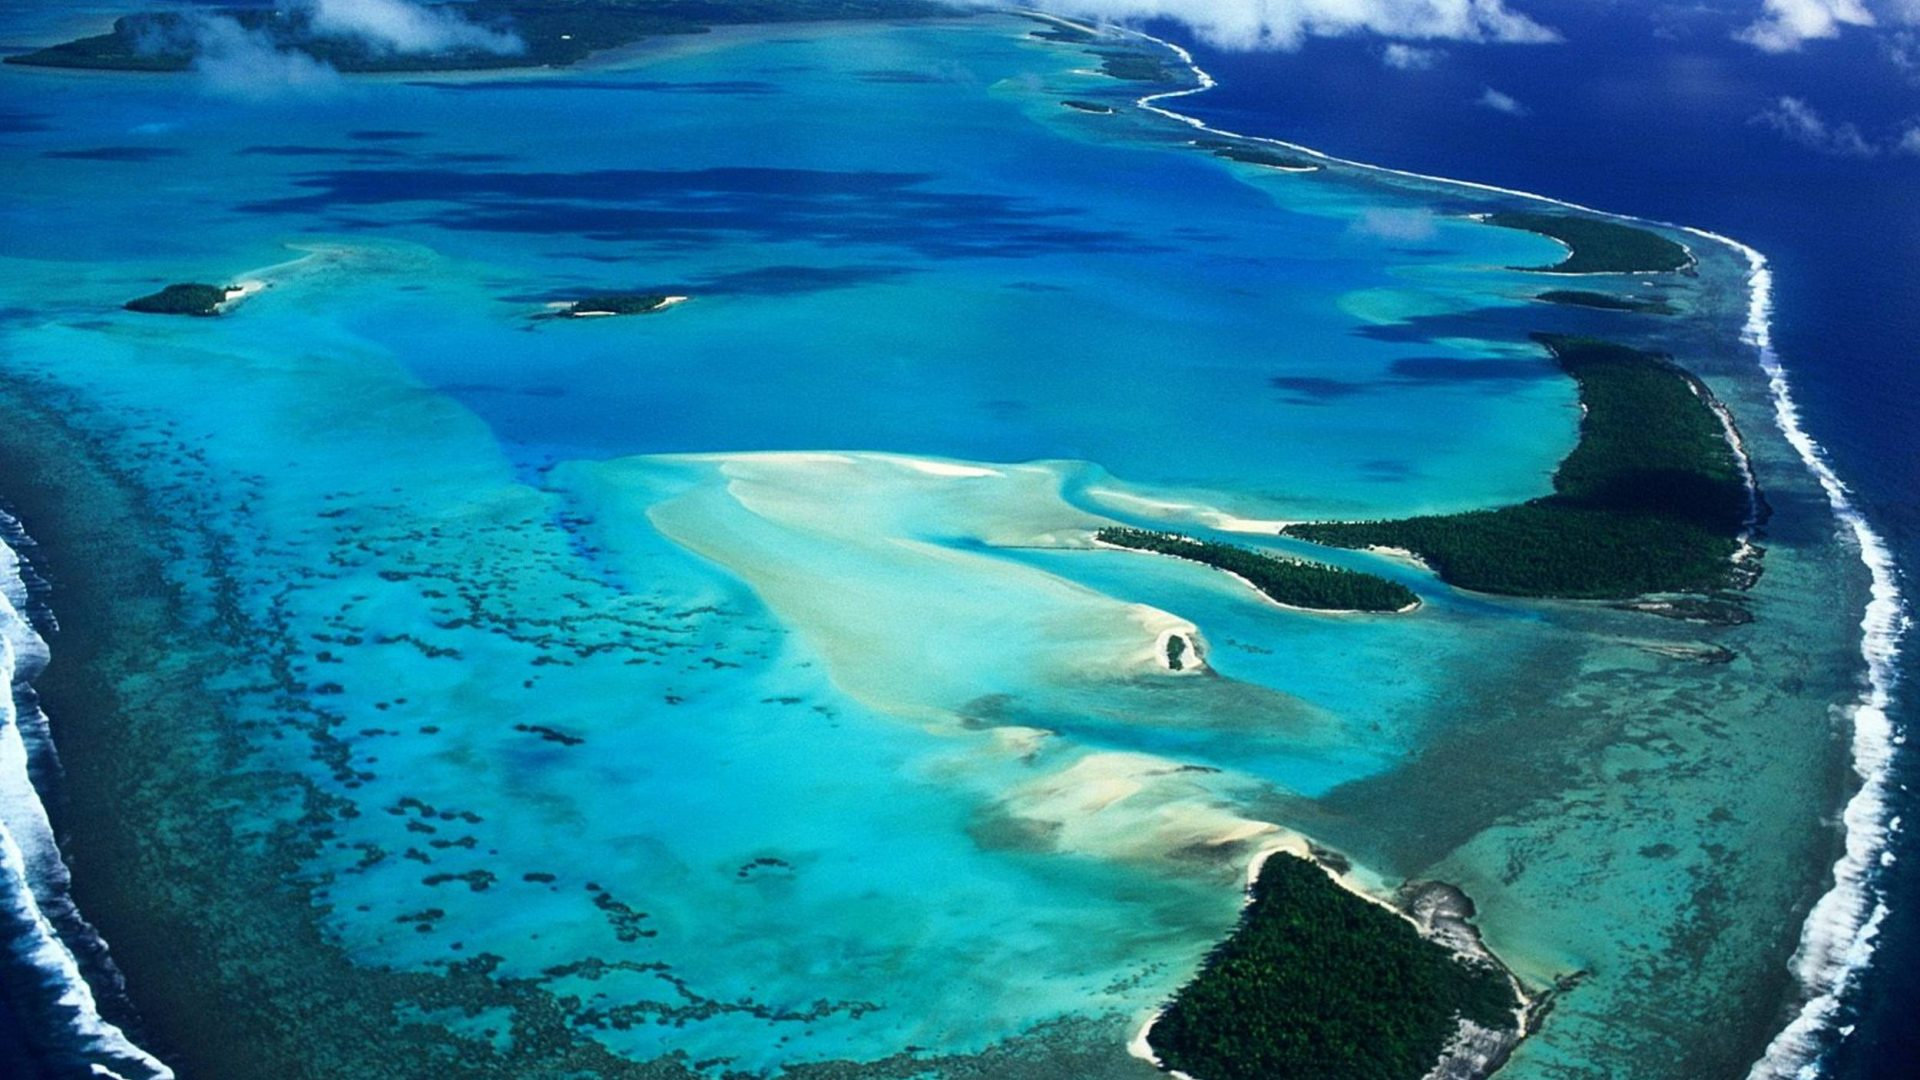 Beaches-Aerial-Pacific-Sea-Polynesia-Atoll-Tropical-Cook-South-Helicopter-Reef-Ocean-Paradise-Arial-wallpaper-wp3802924